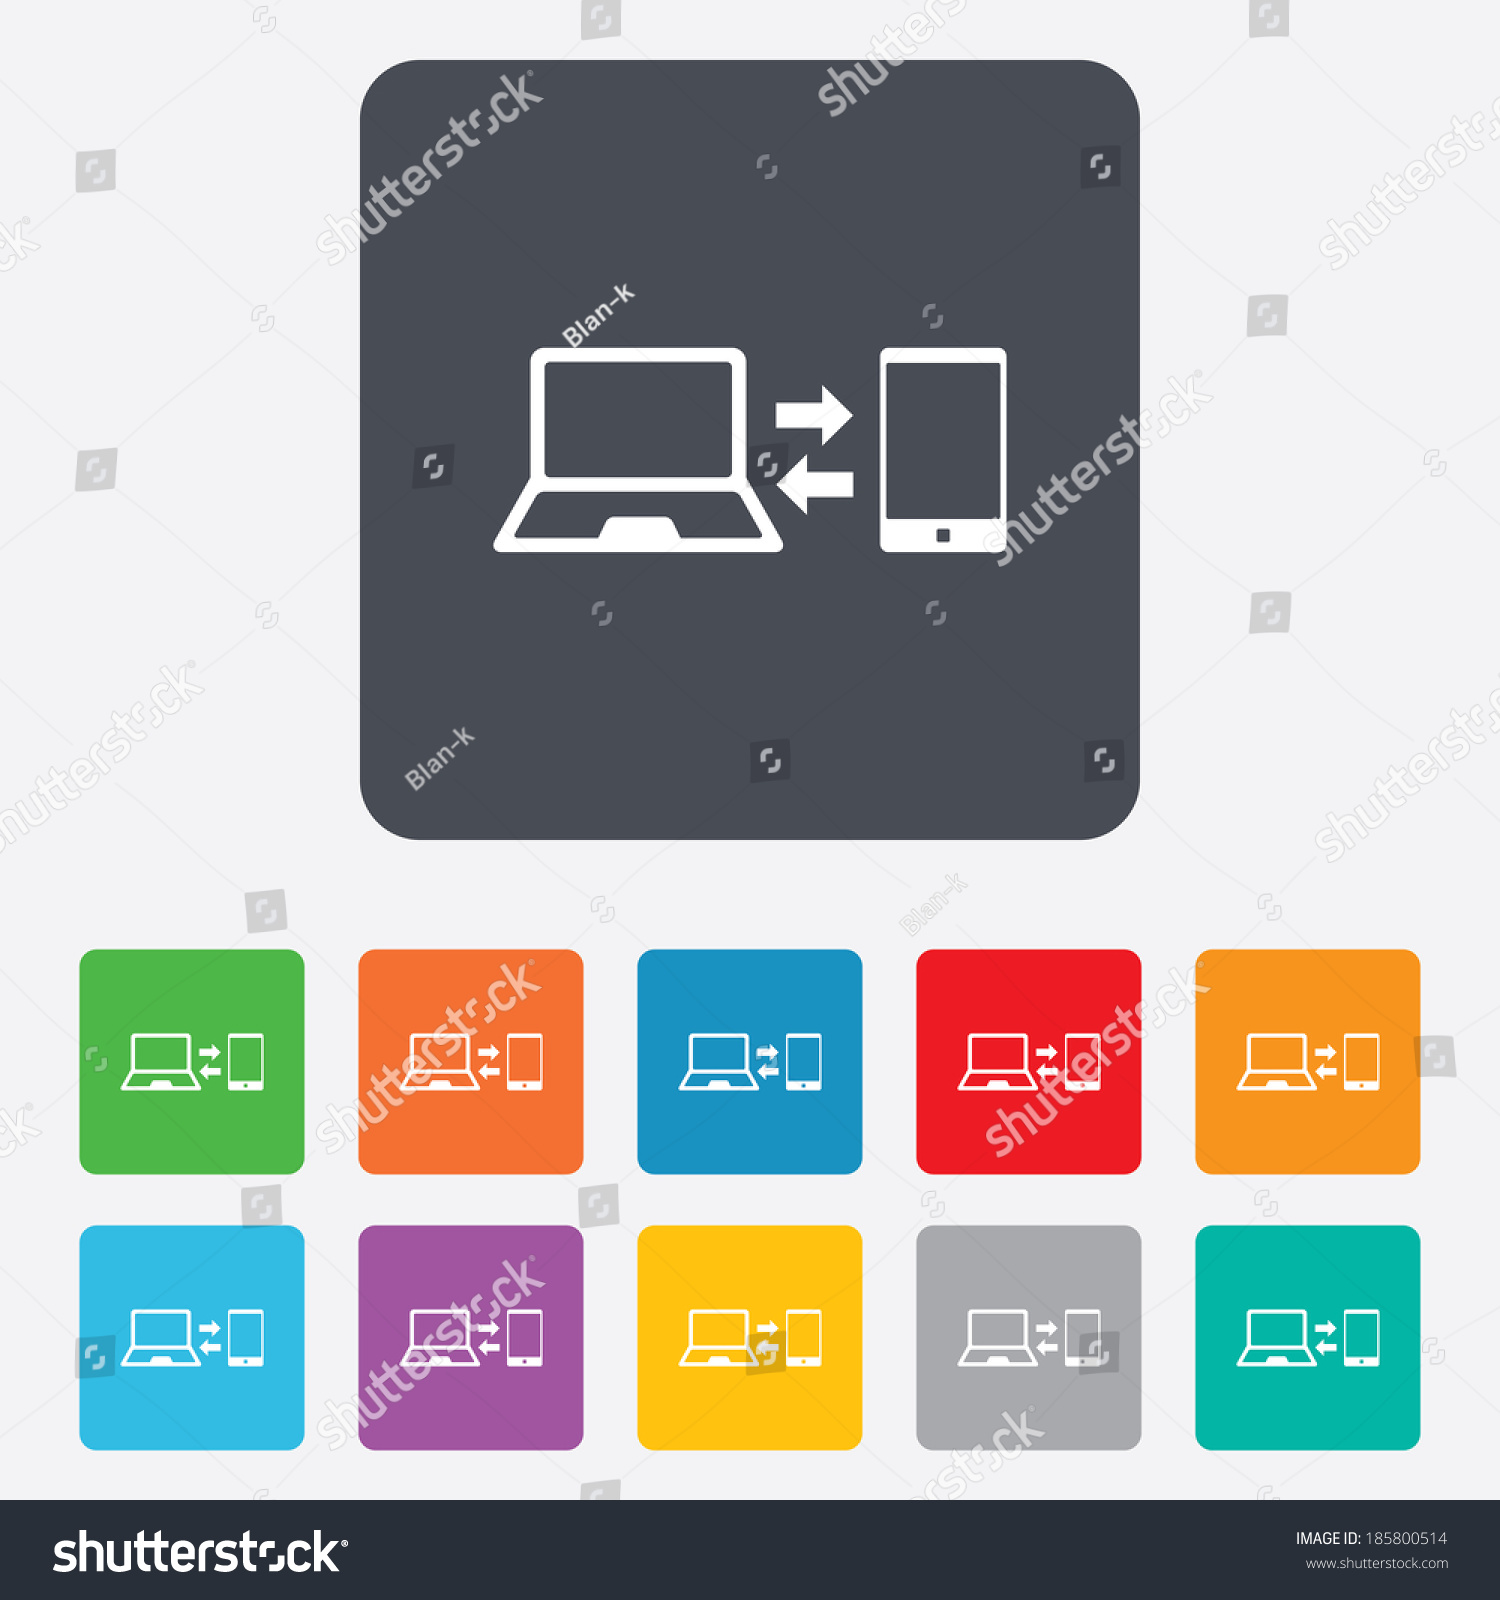 Synchronization sign icon notebook smartphone sync stock vector notebook with smartphone sync symbol data exchange rounded squares 11 biocorpaavc